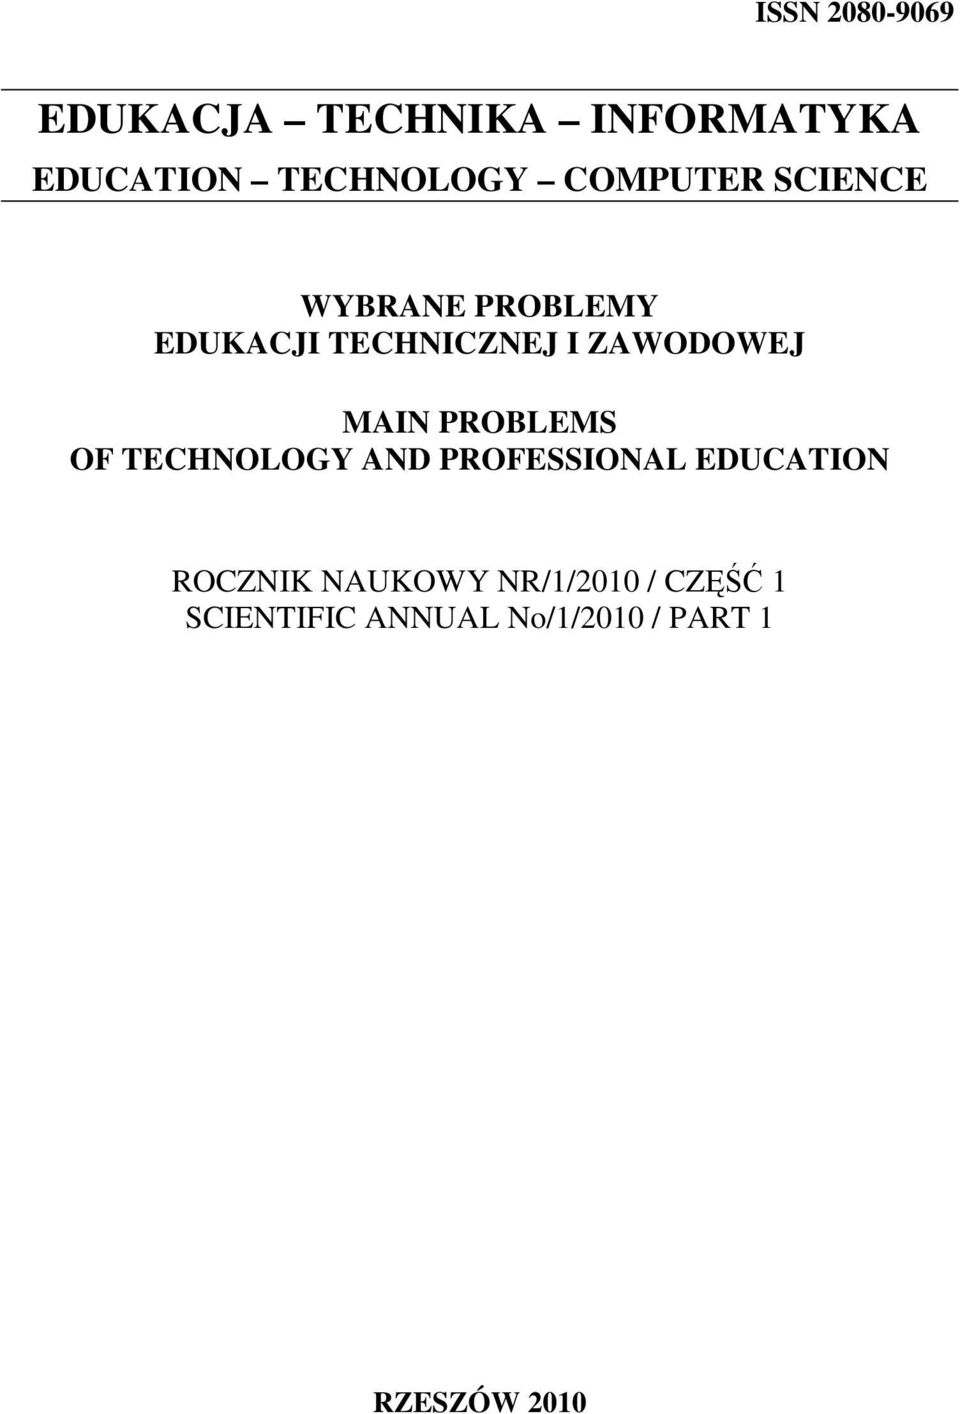 MAIN PROBLEMS OF TECHNOLOGY AND PROFESSIONAL EDUCATION ROCZNIK